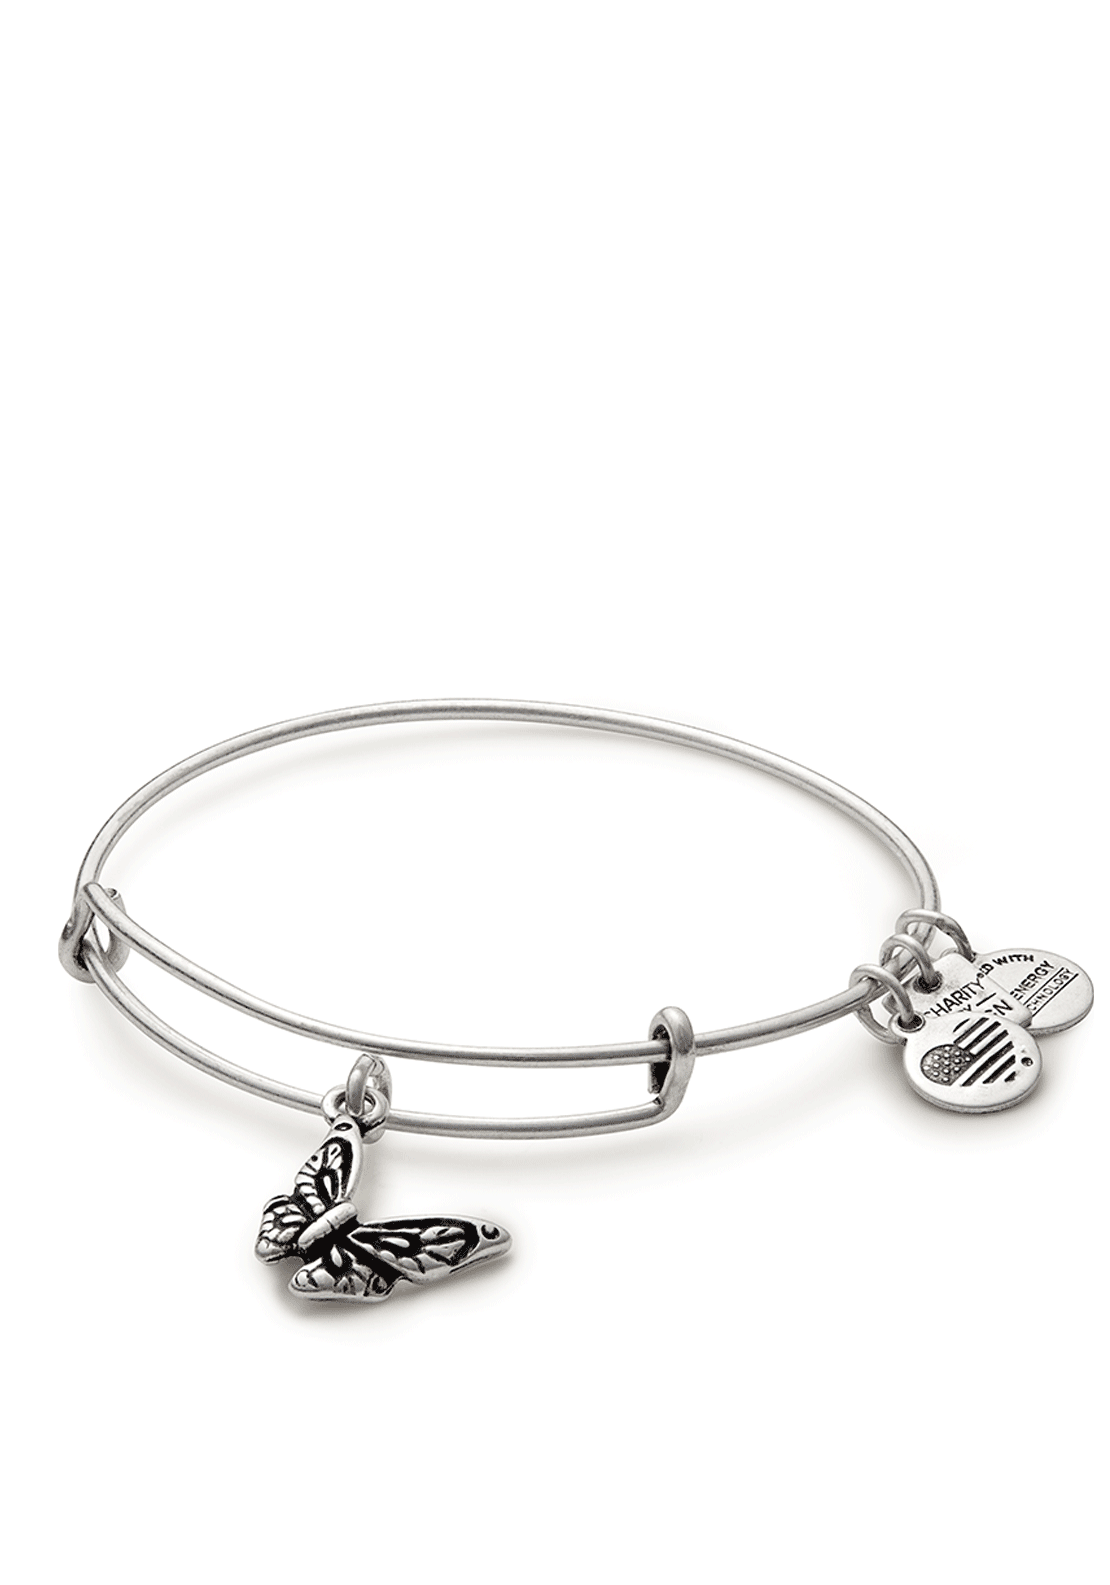 Alex and Ani Charity Butterfly Bracelet, Silver